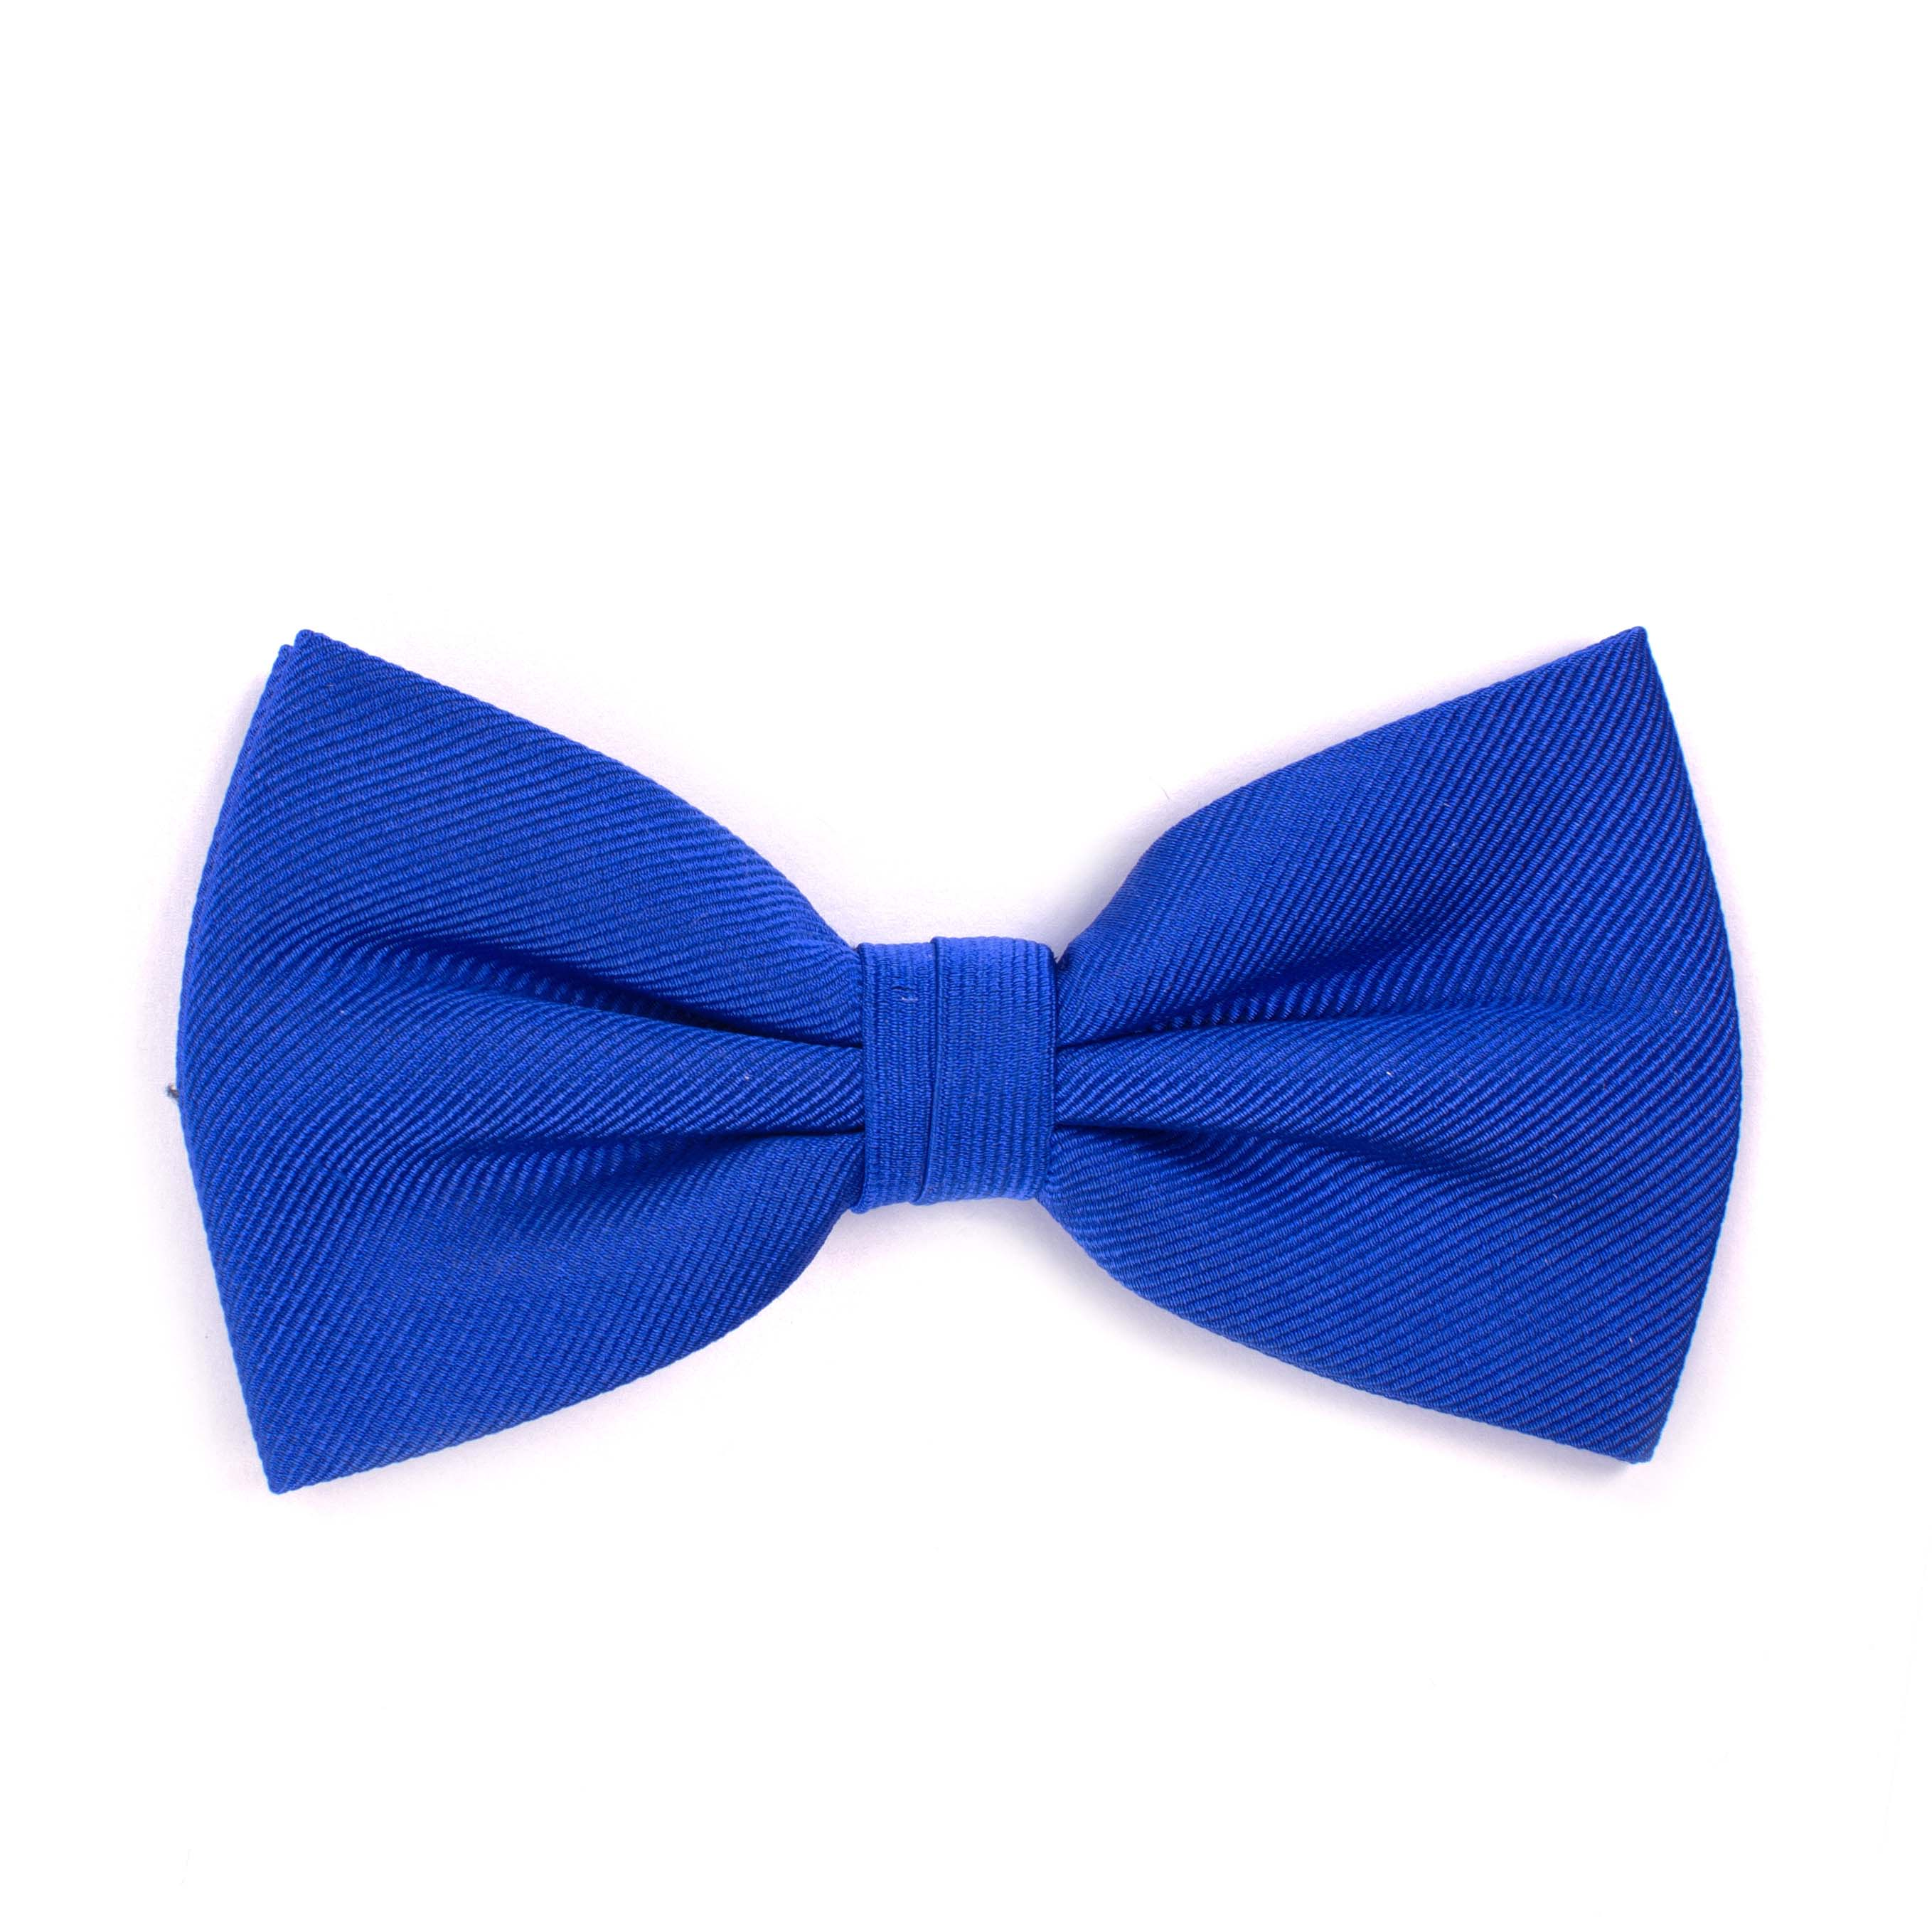 Bow tie classic ribbed royal blue